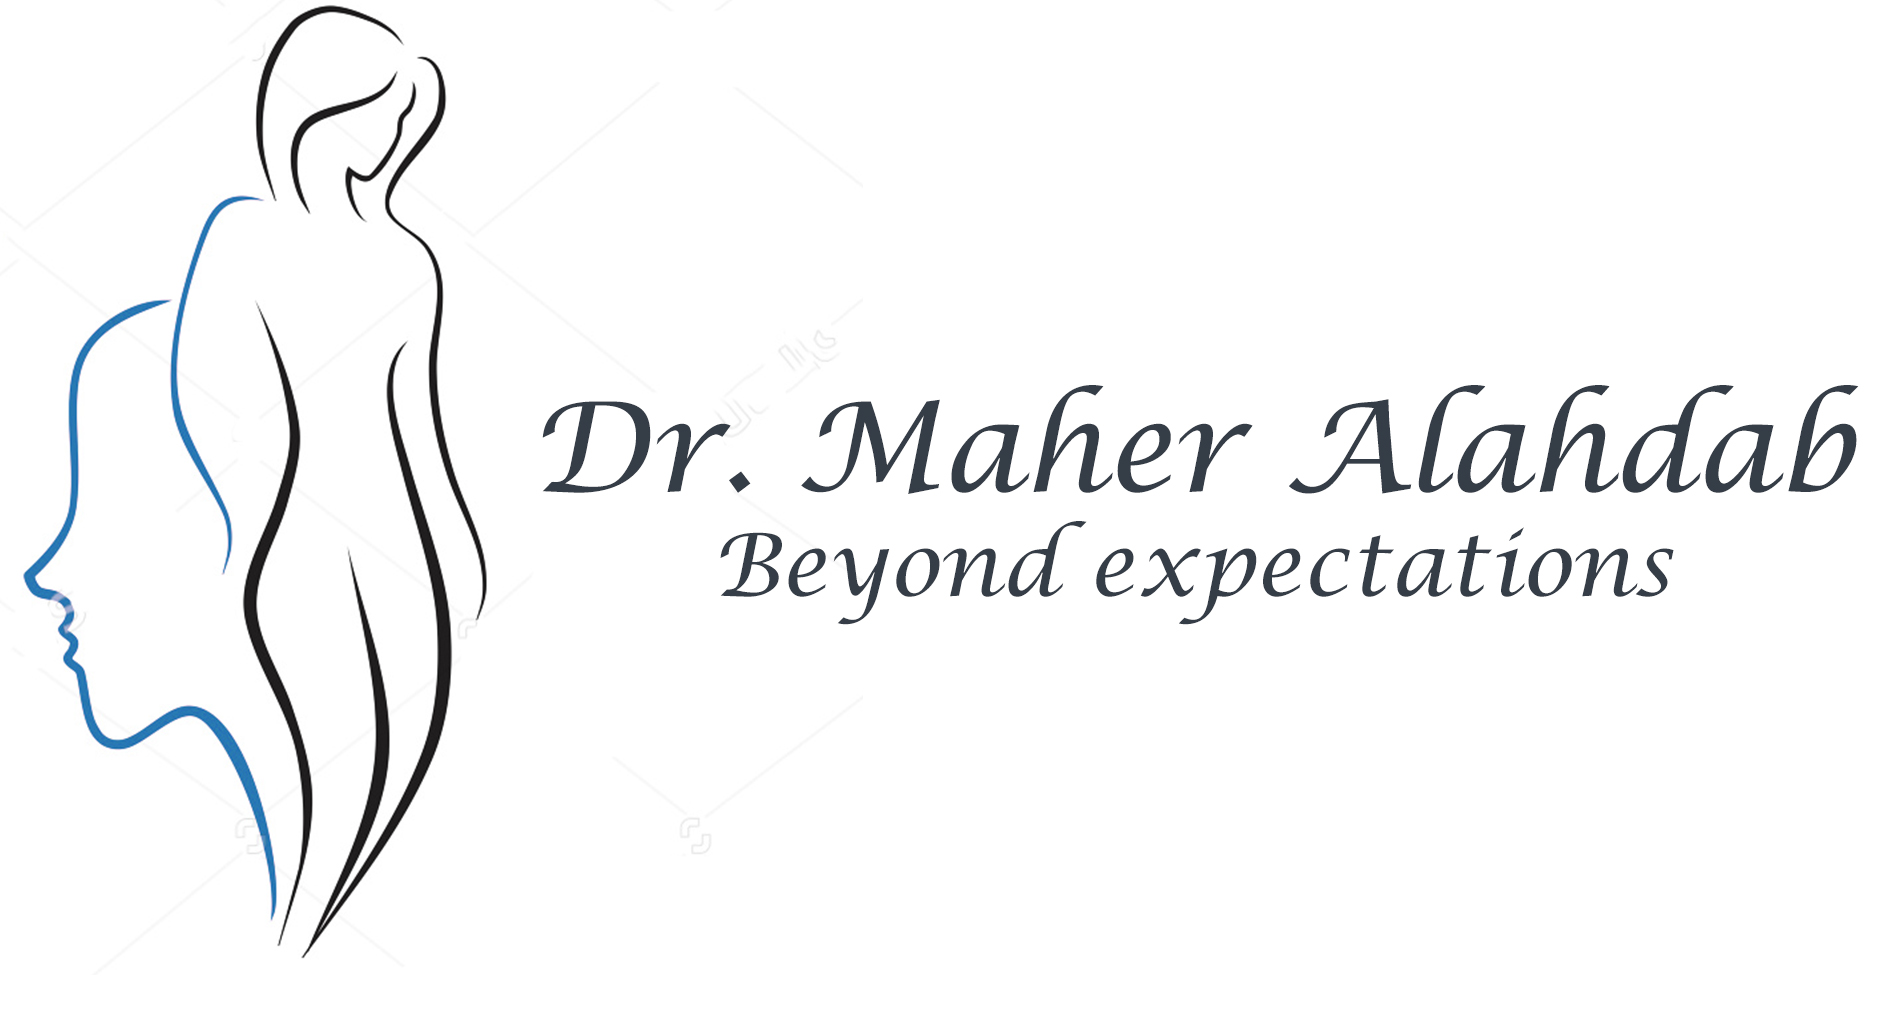 Plastic Surgery Consultant - Riyadh - Dubai - Plastic Surgeon - Beauty